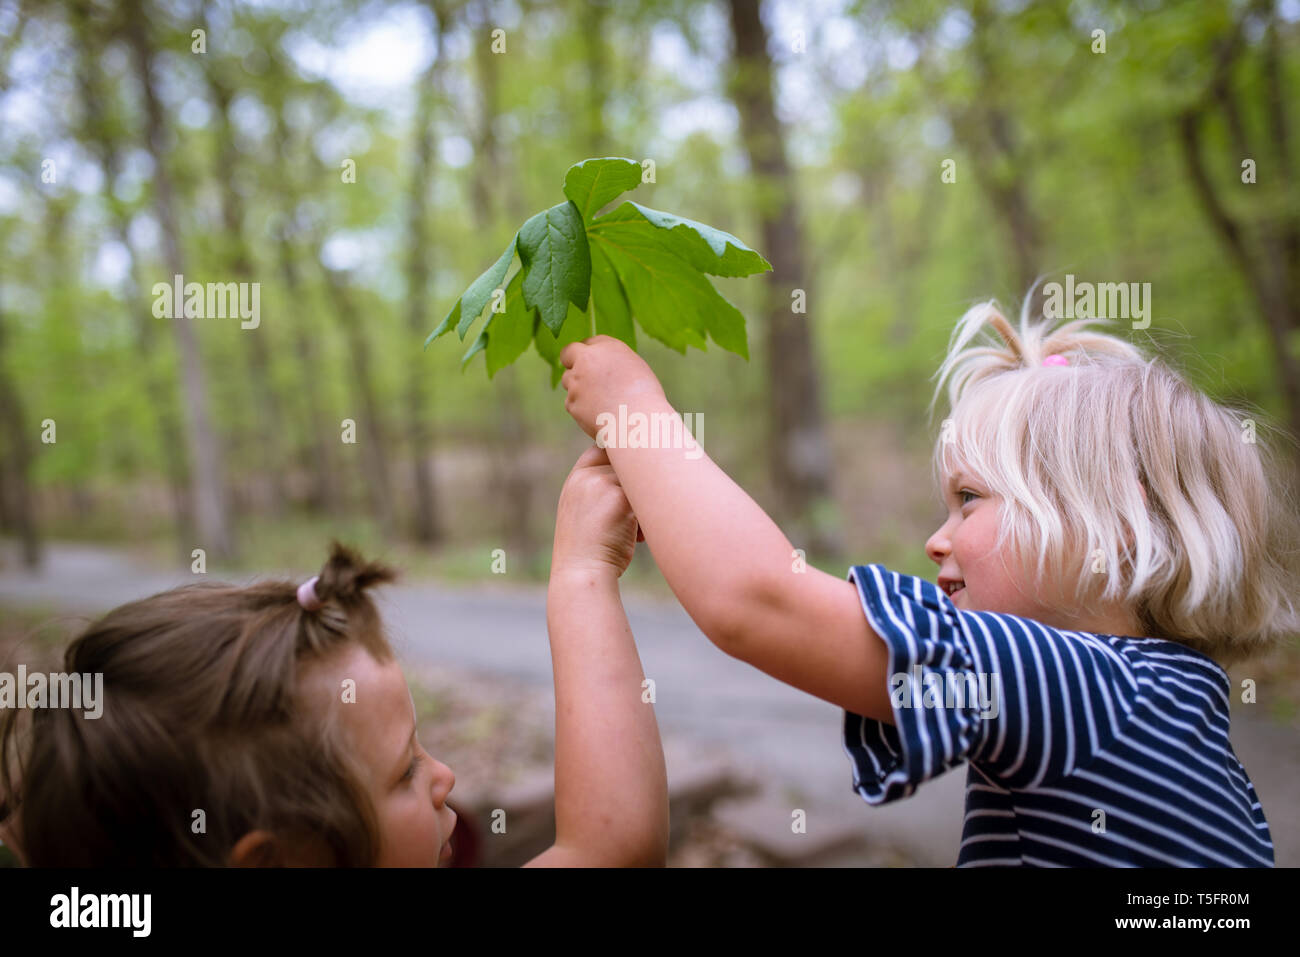 Two little girls holding a big leaf - Stock Image